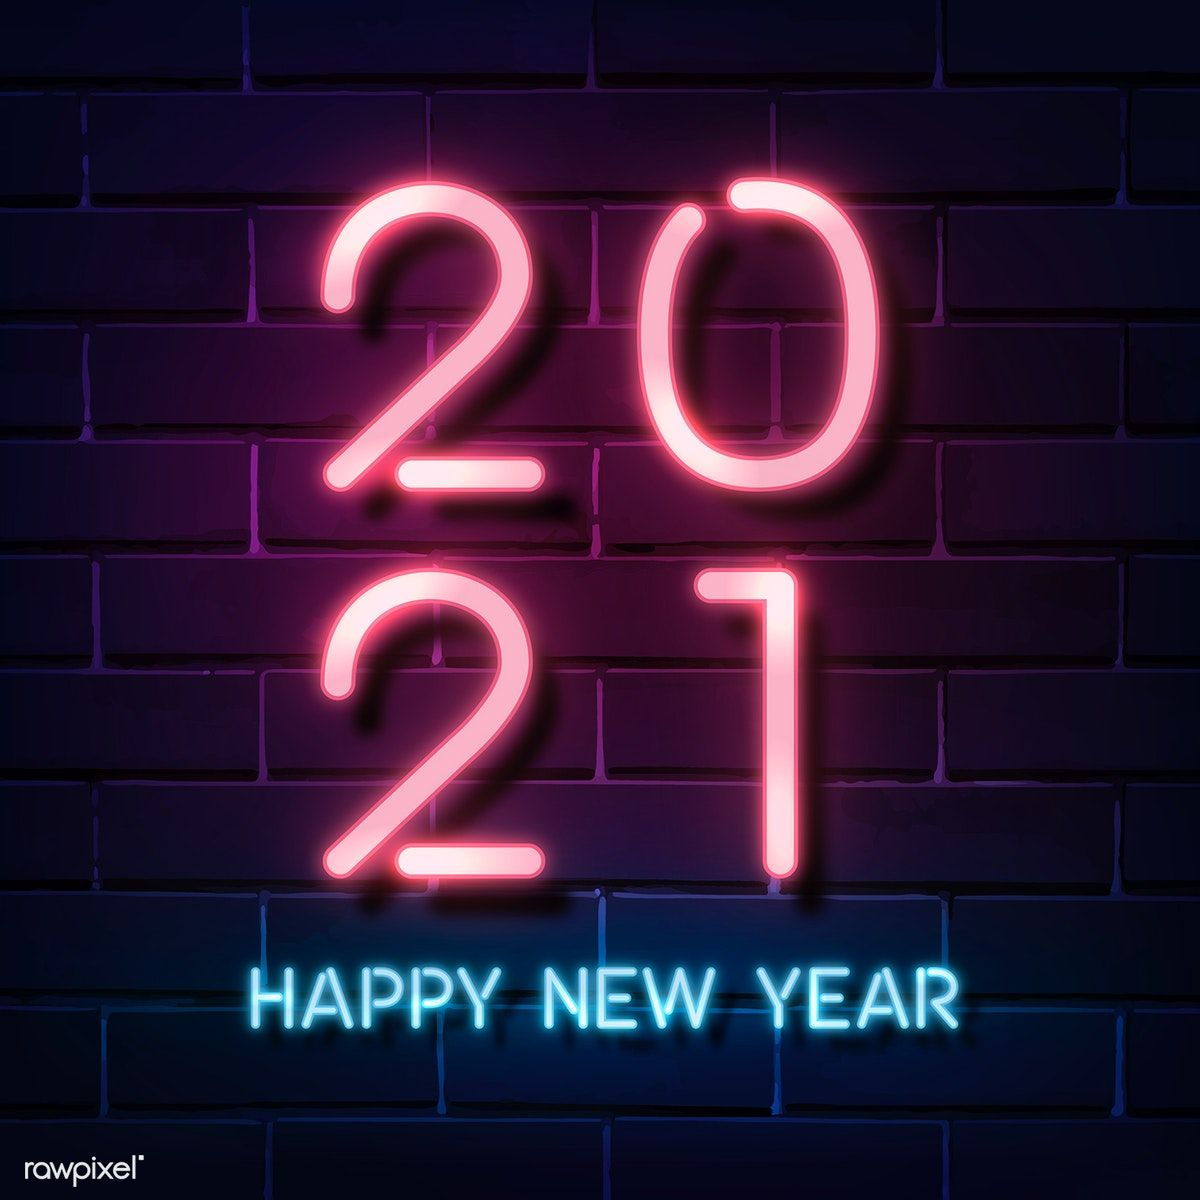 2020 的 Download premium illustration of Neon bright happy